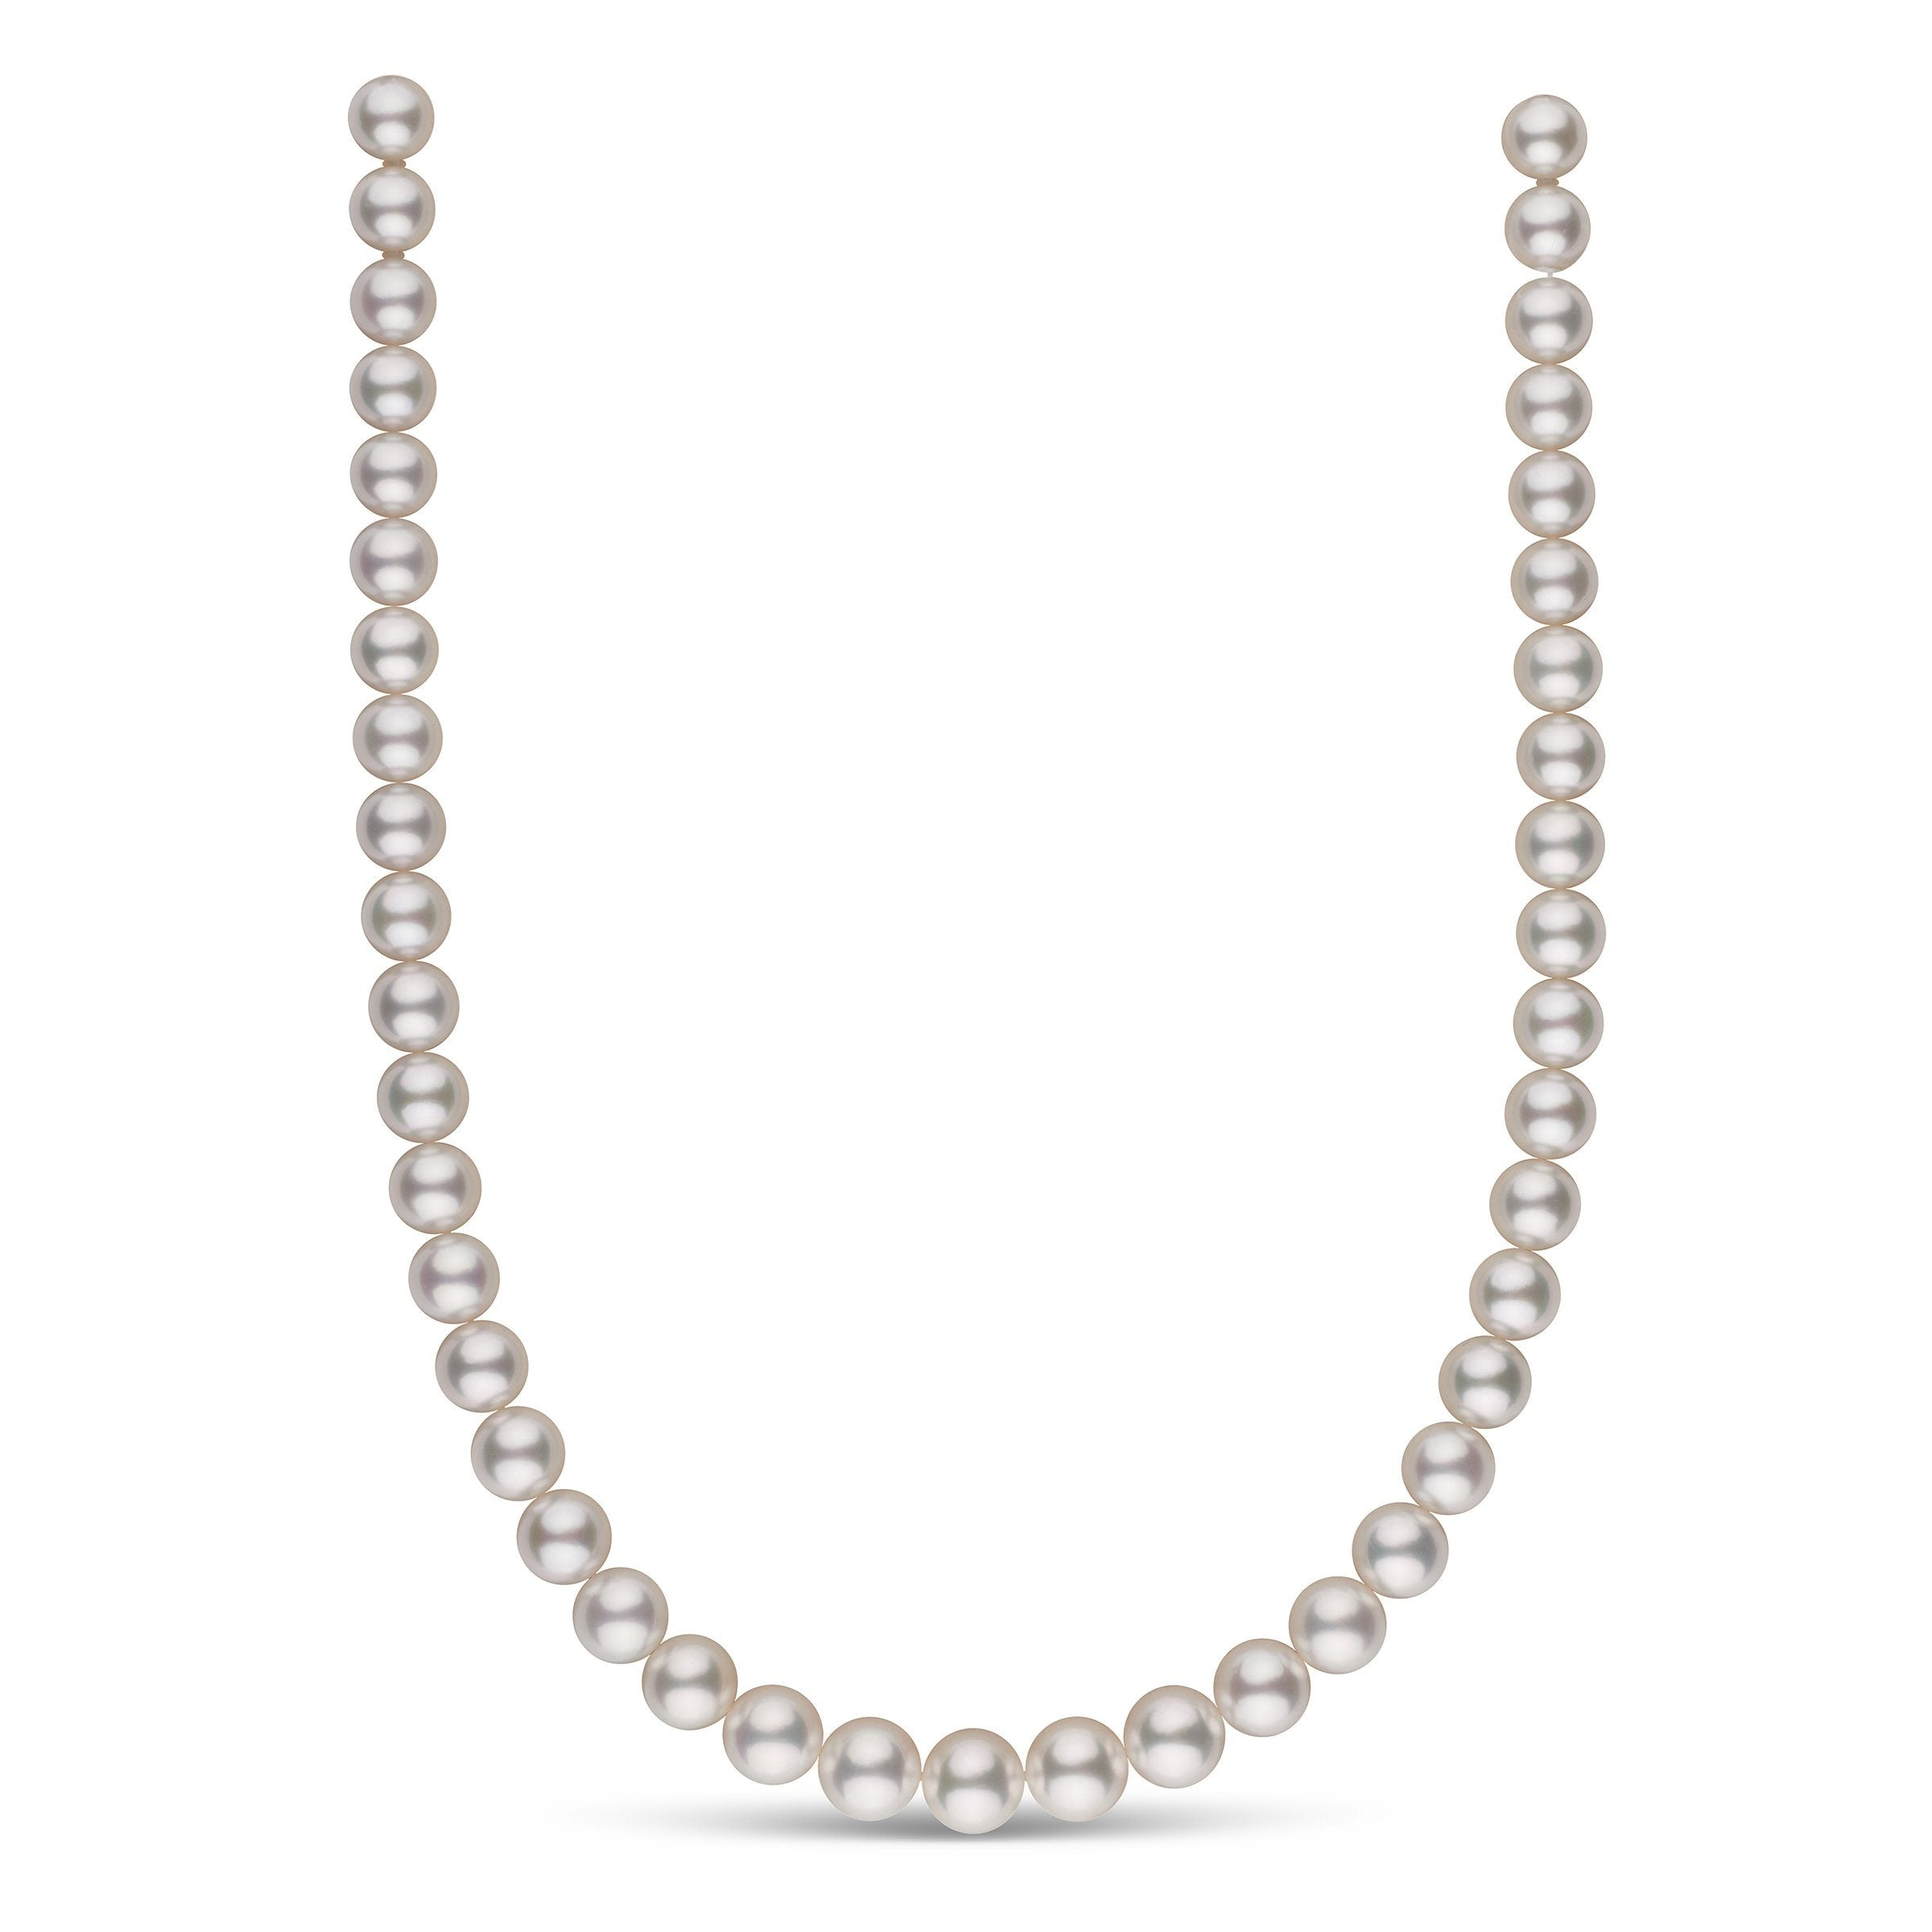 The Waltz White South Sea Pearl Necklace